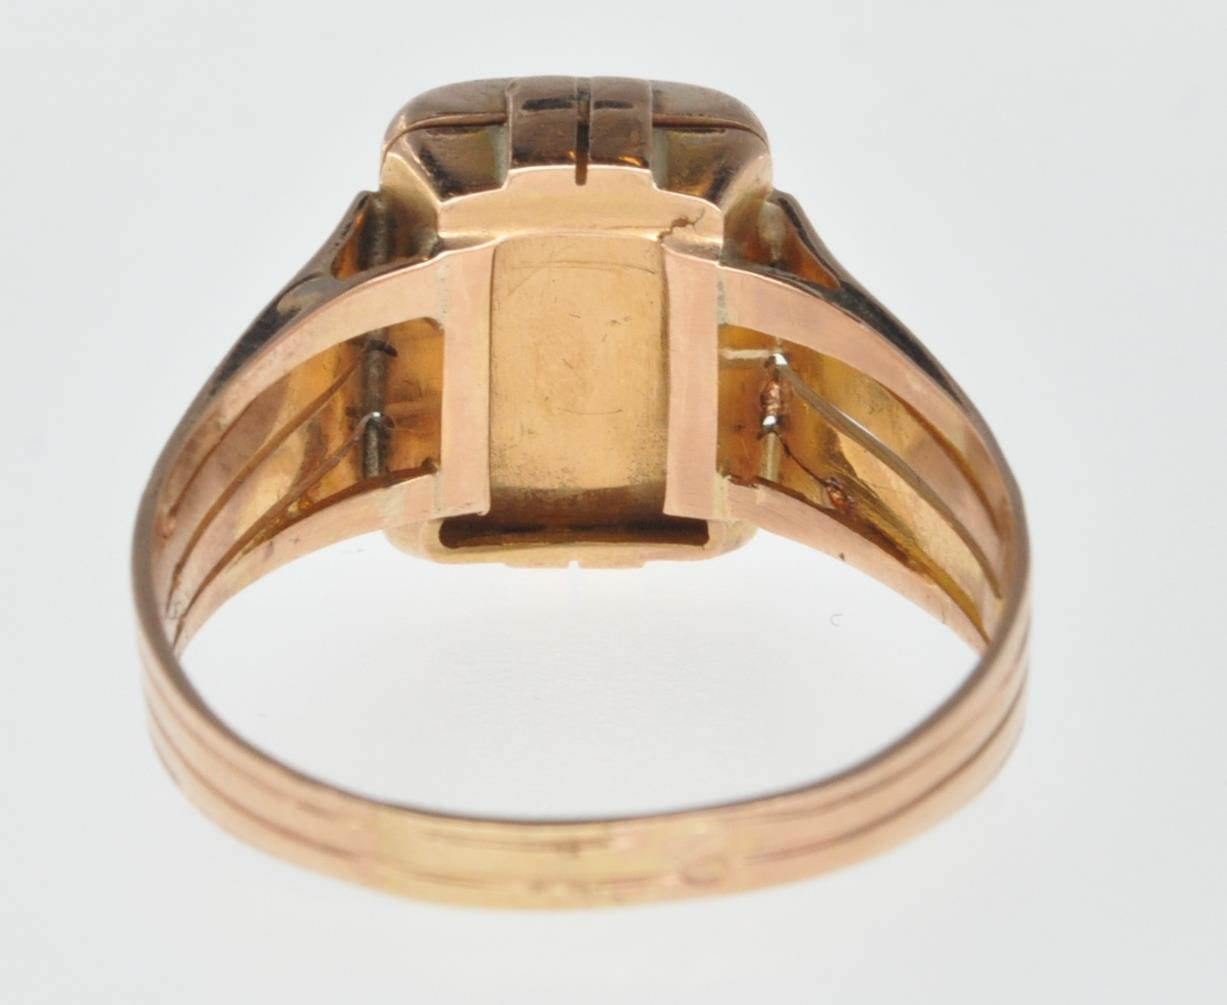 ANTIQUE FRENCH 18CT GOLD SIGNET RING - Image 4 of 6